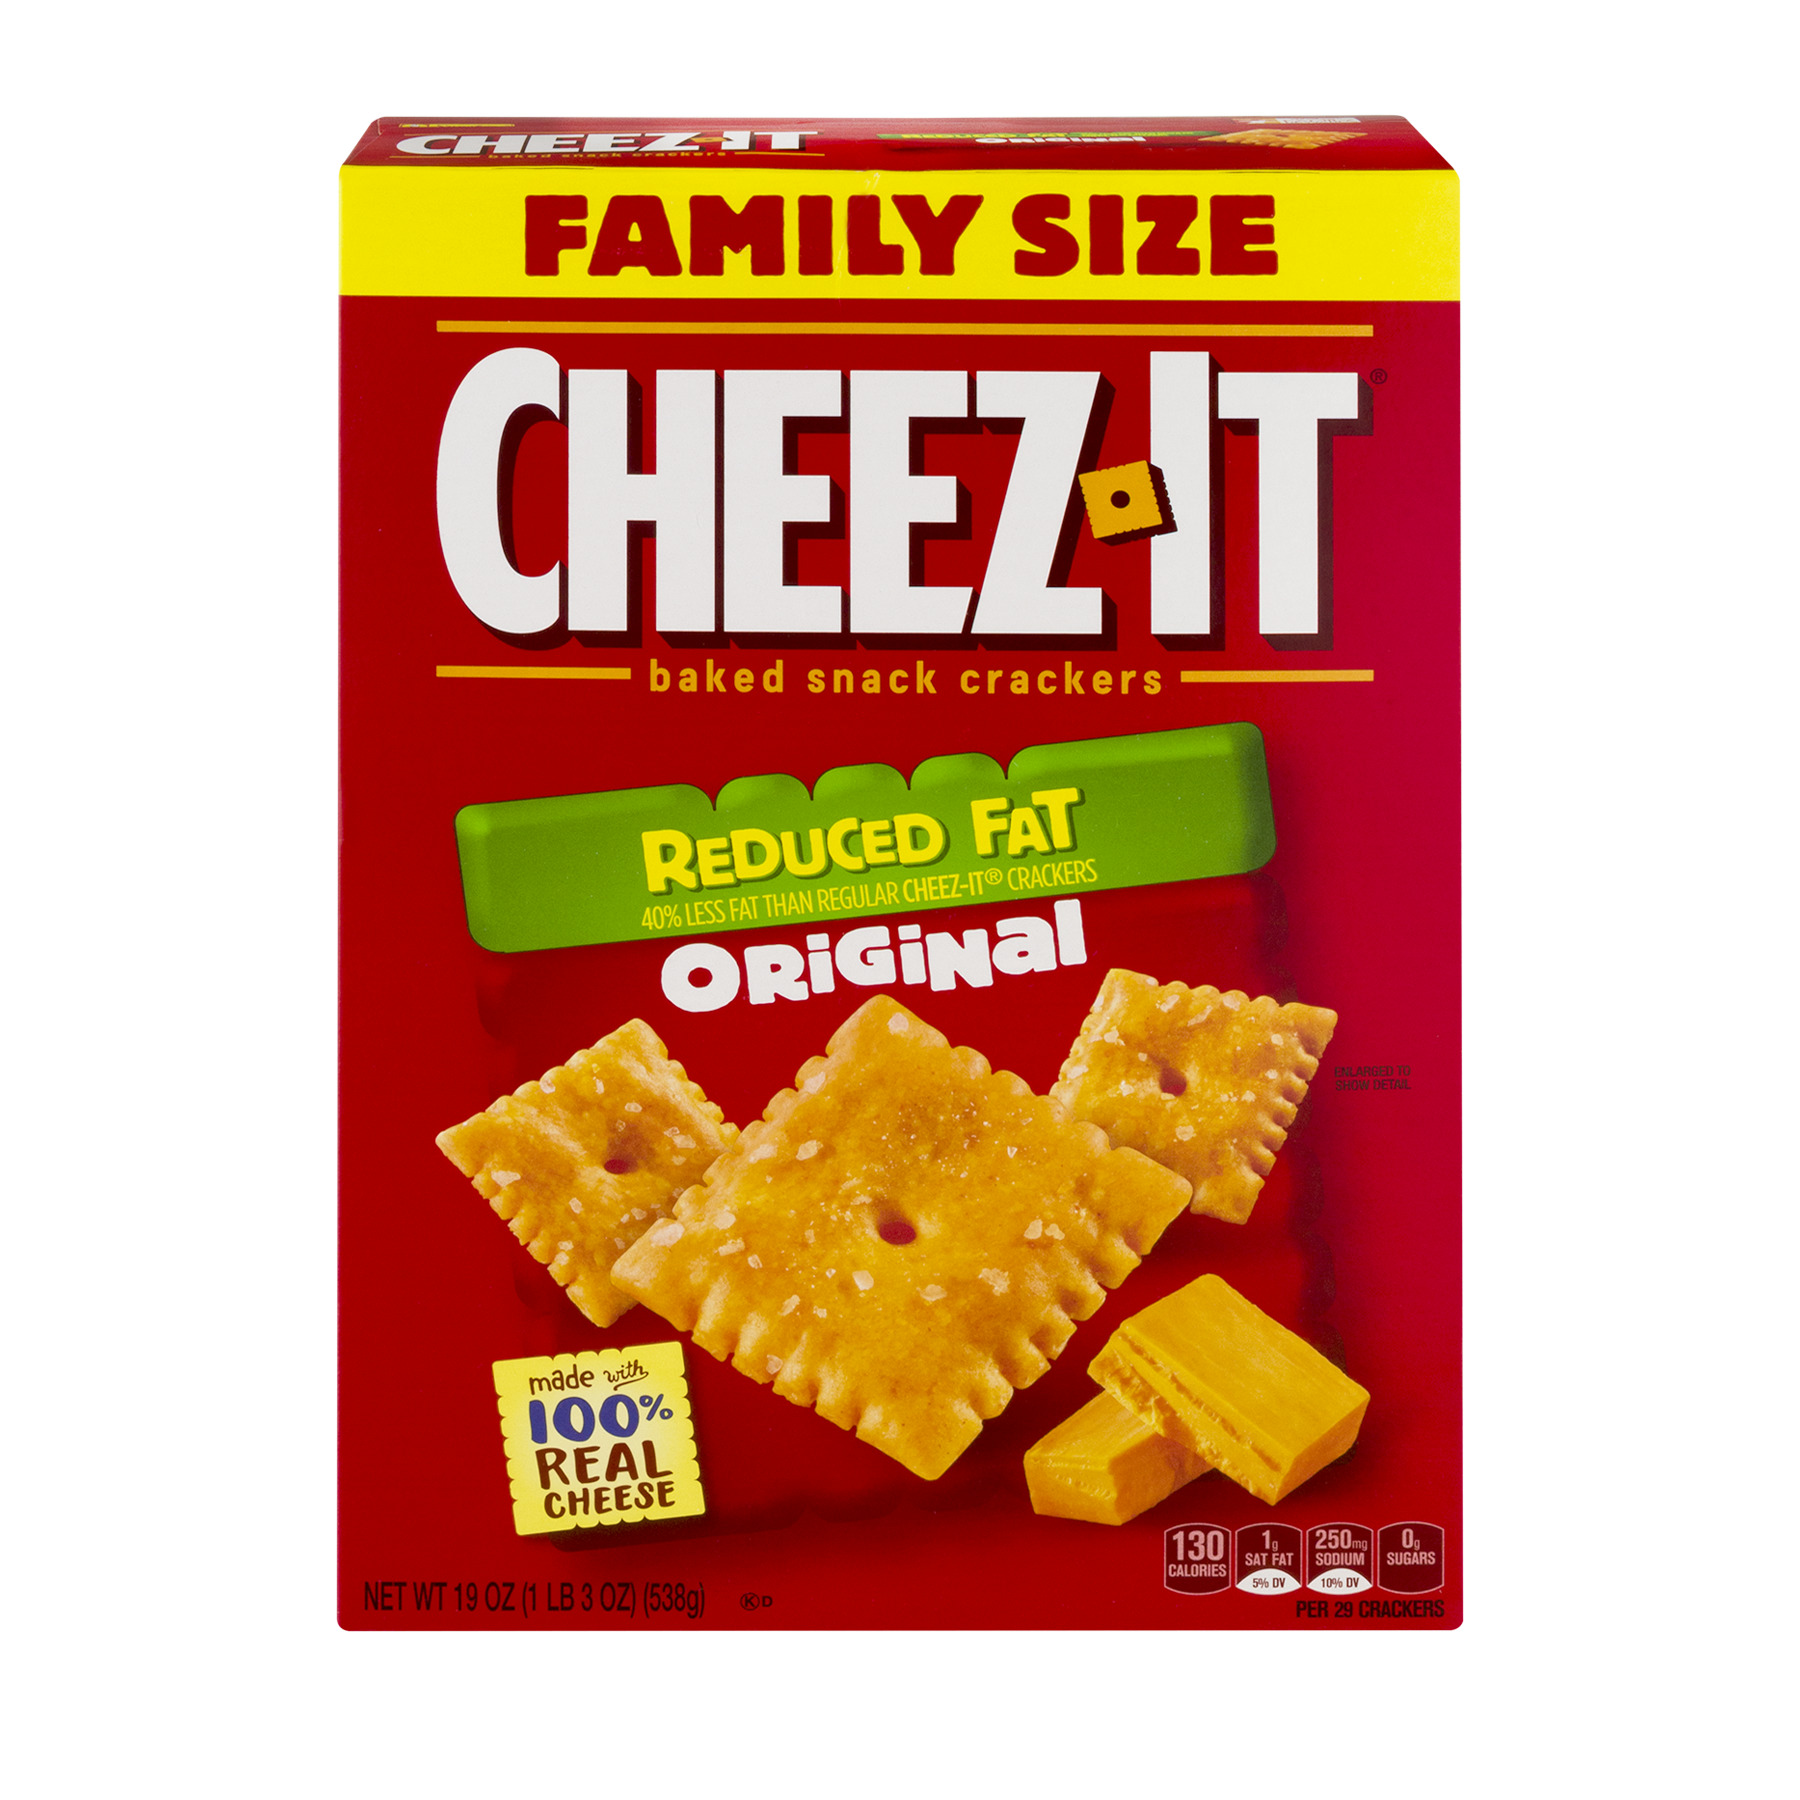 Cheez-It® Reduced Fat Original Baked Snack Crackers 19 oz. Box